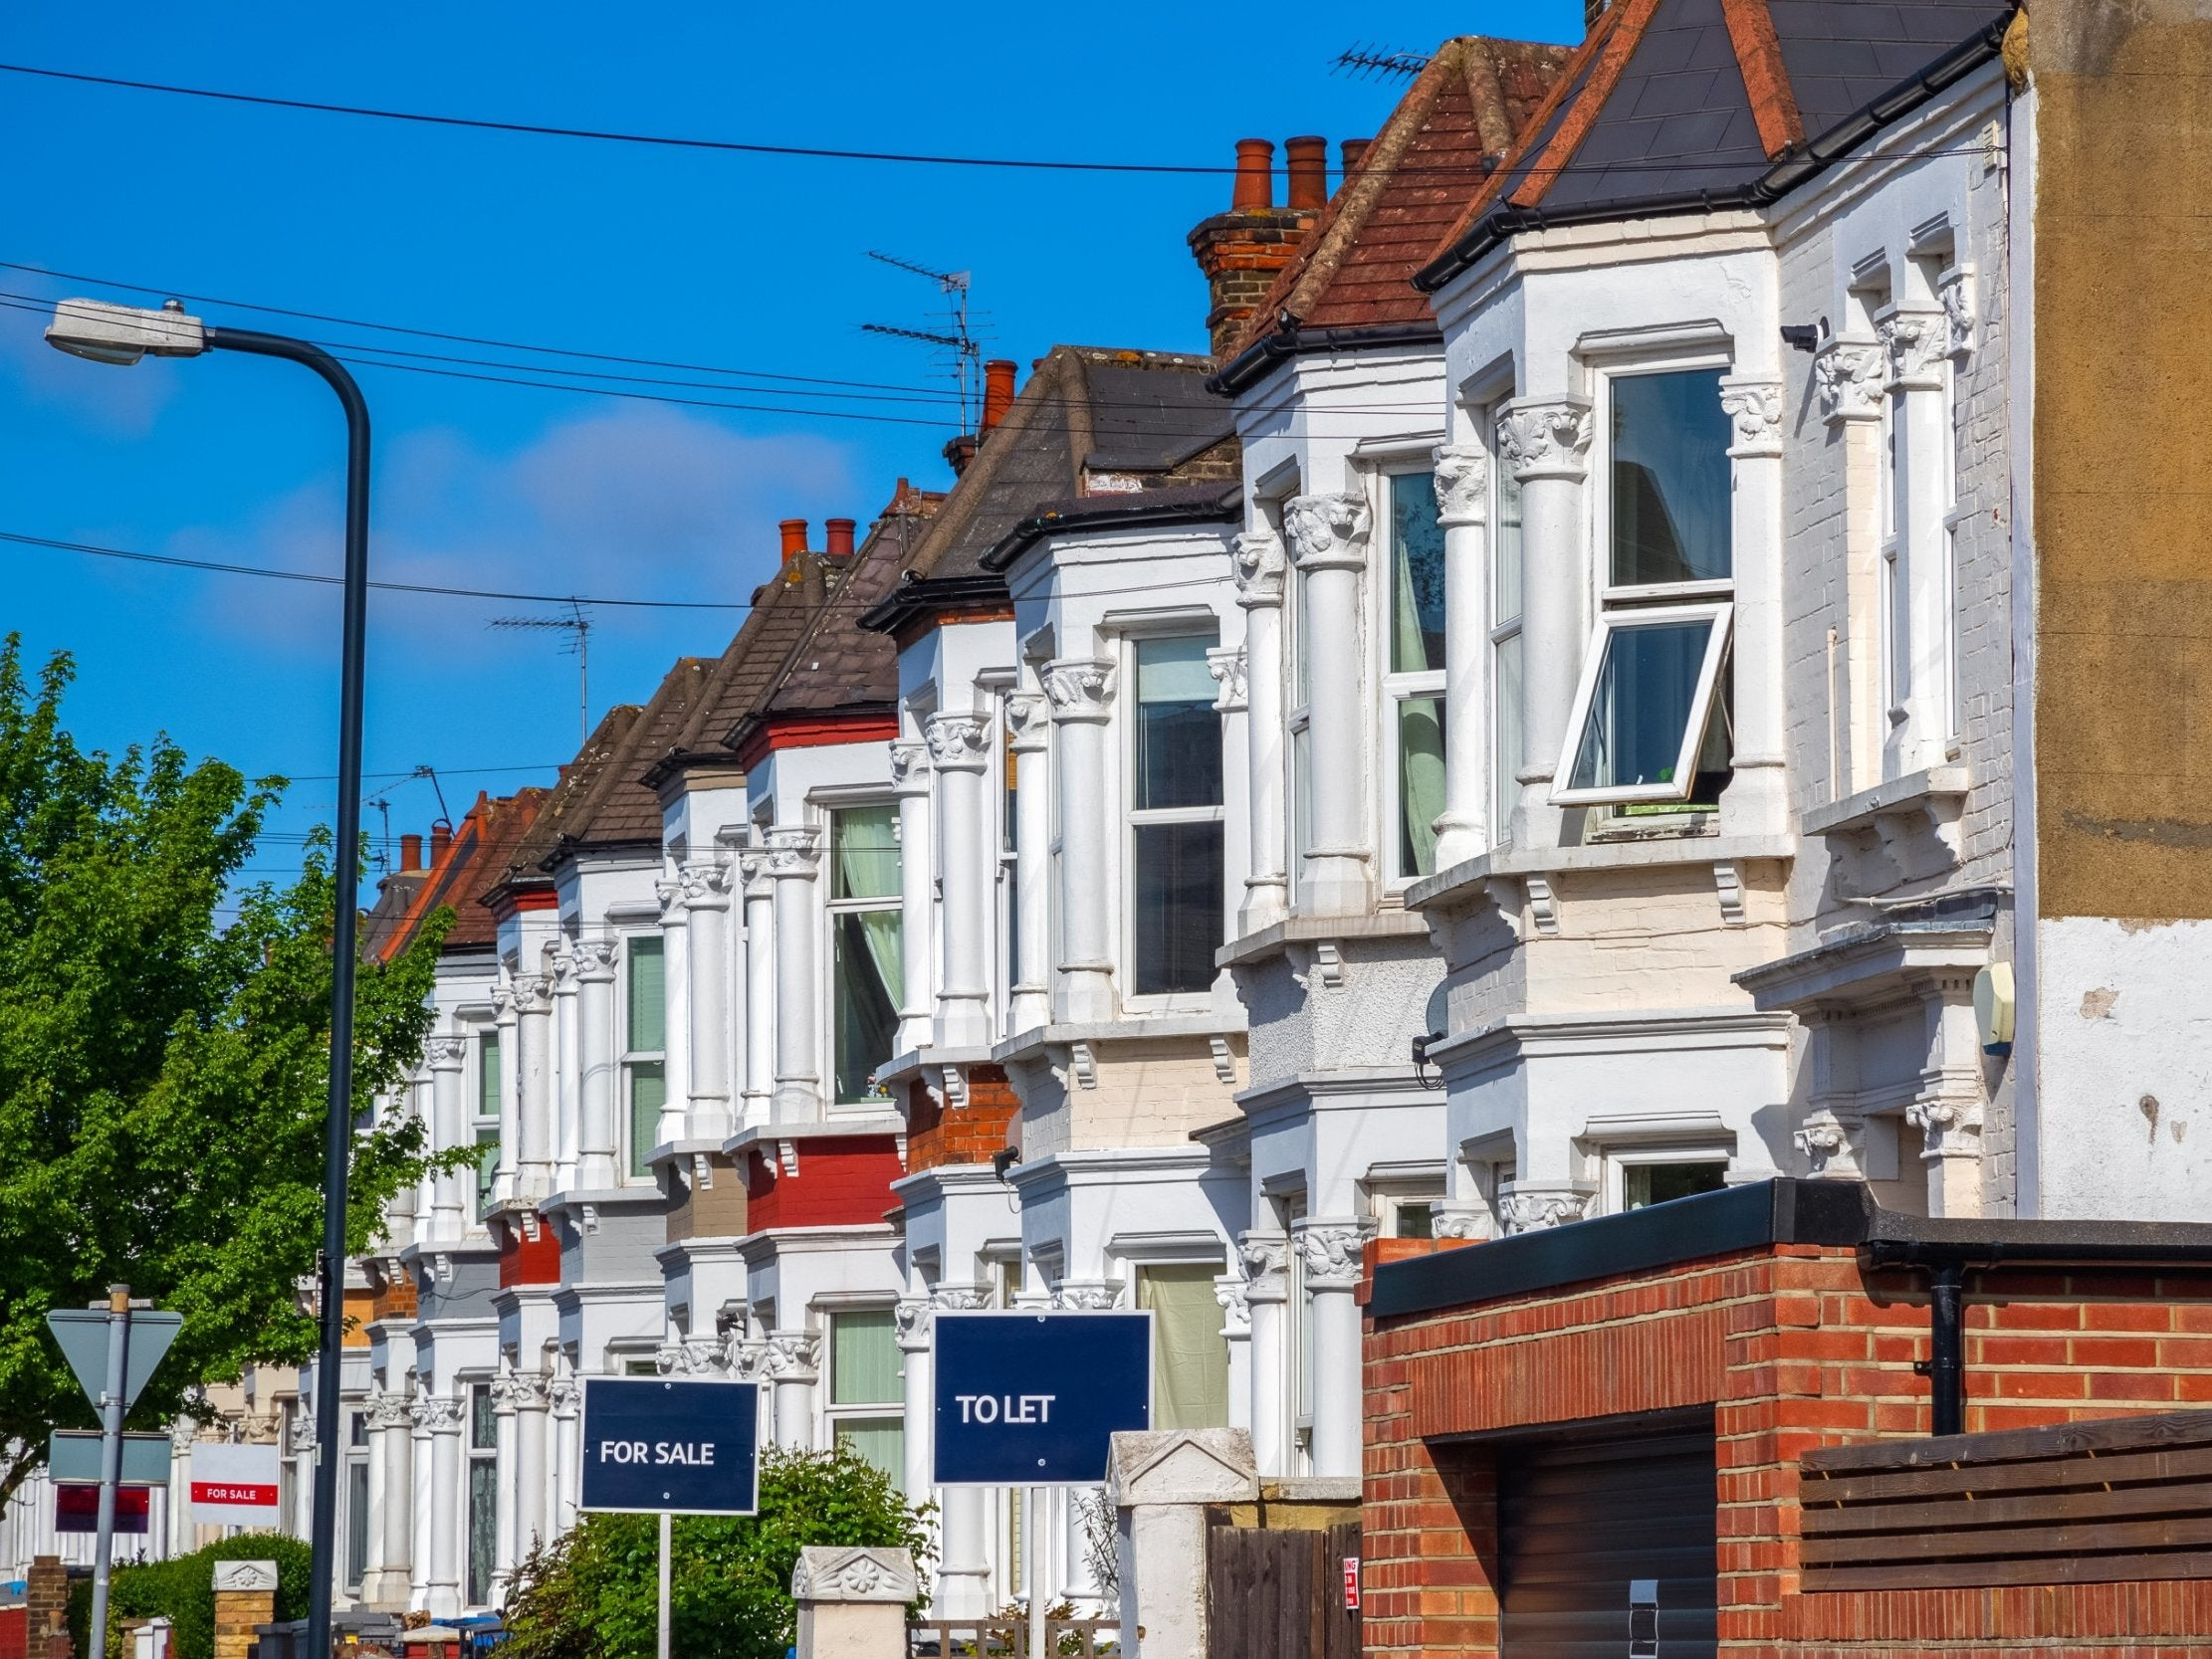 property market - latest news, breaking stories and comment